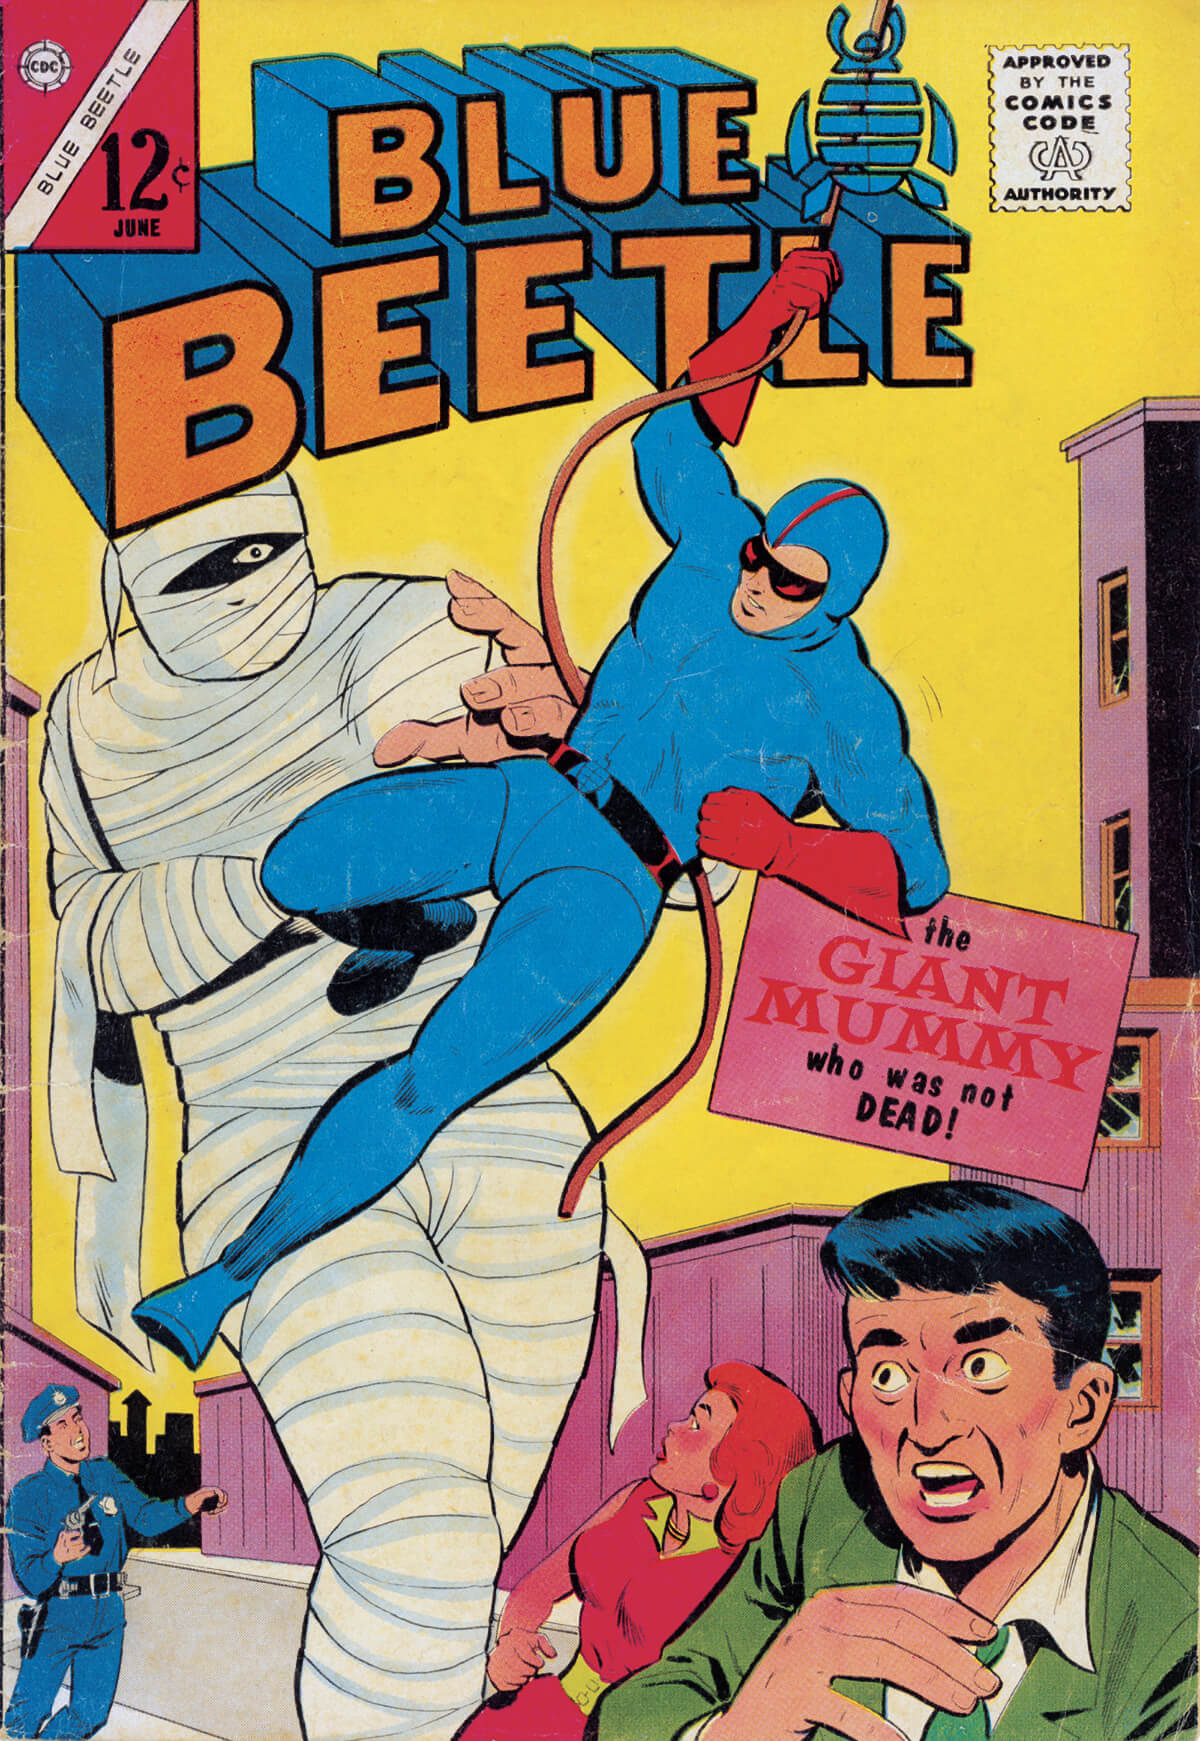 Blue Beetle 1 Cover by Molno and McLaughlin